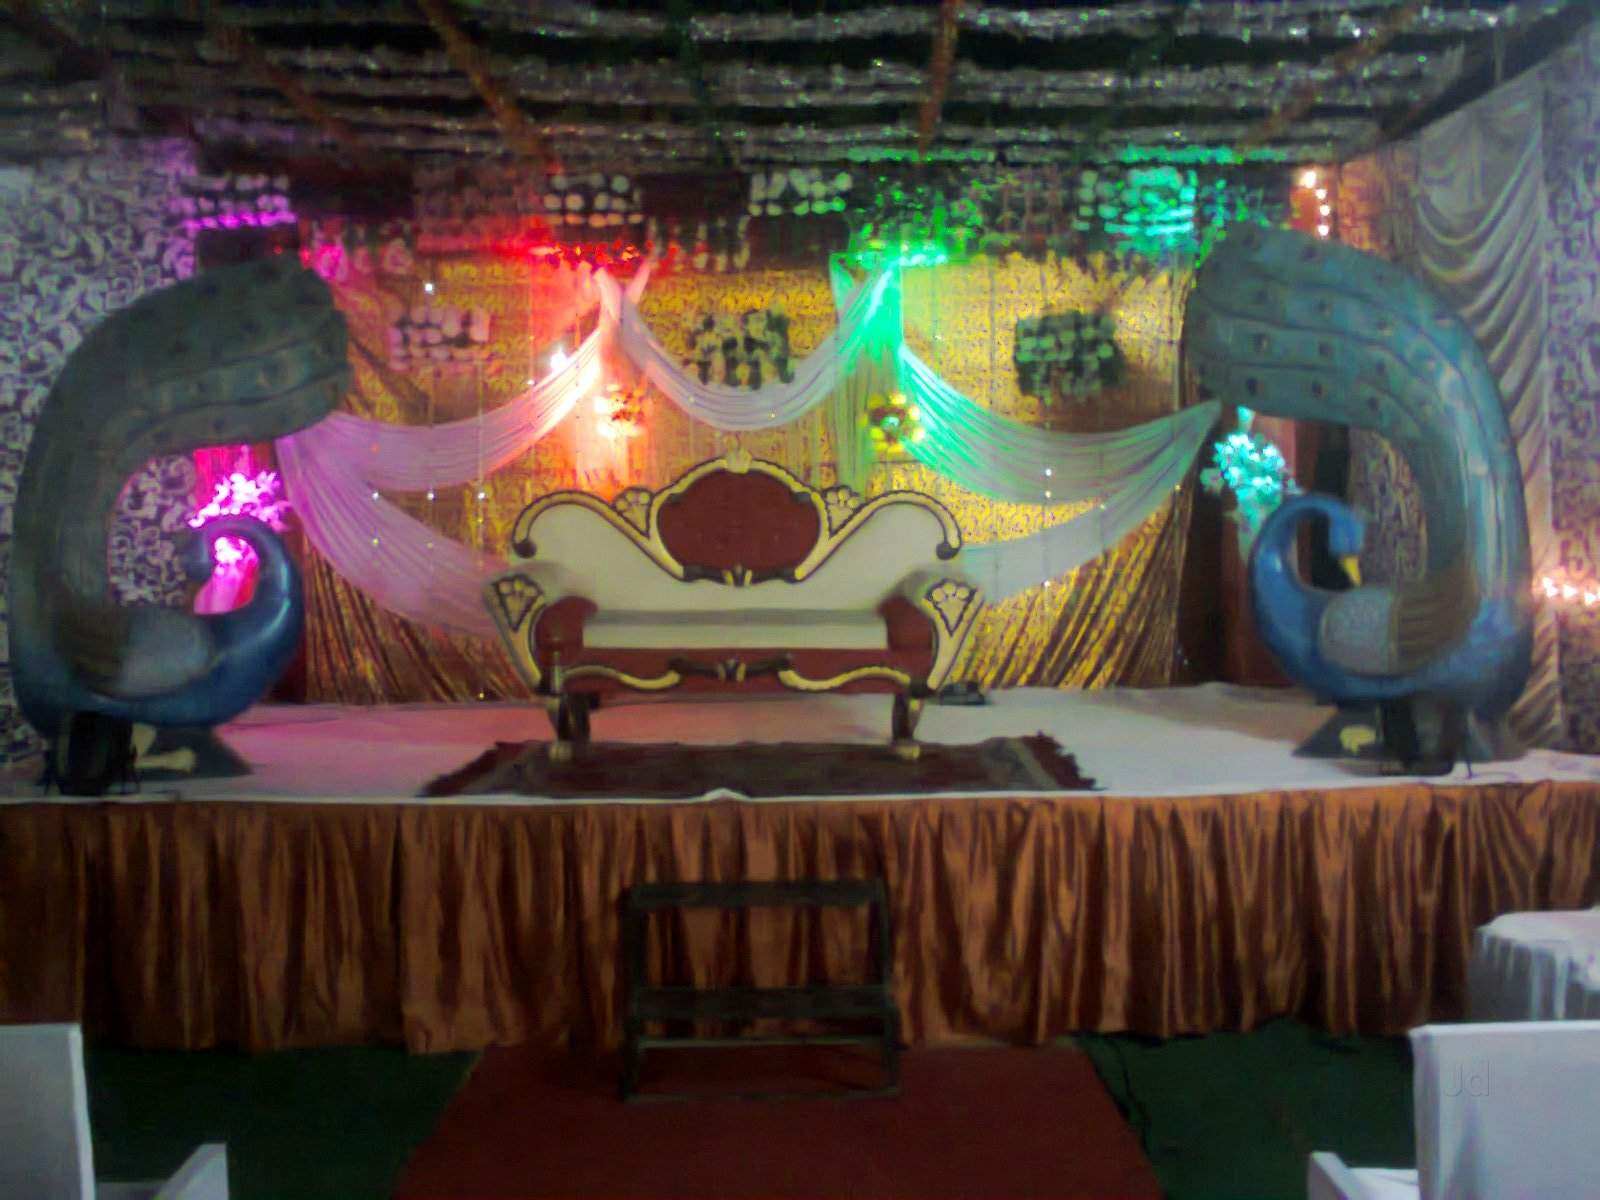 The White House Banquet Hall Jhansi Ho Banquet Halls In